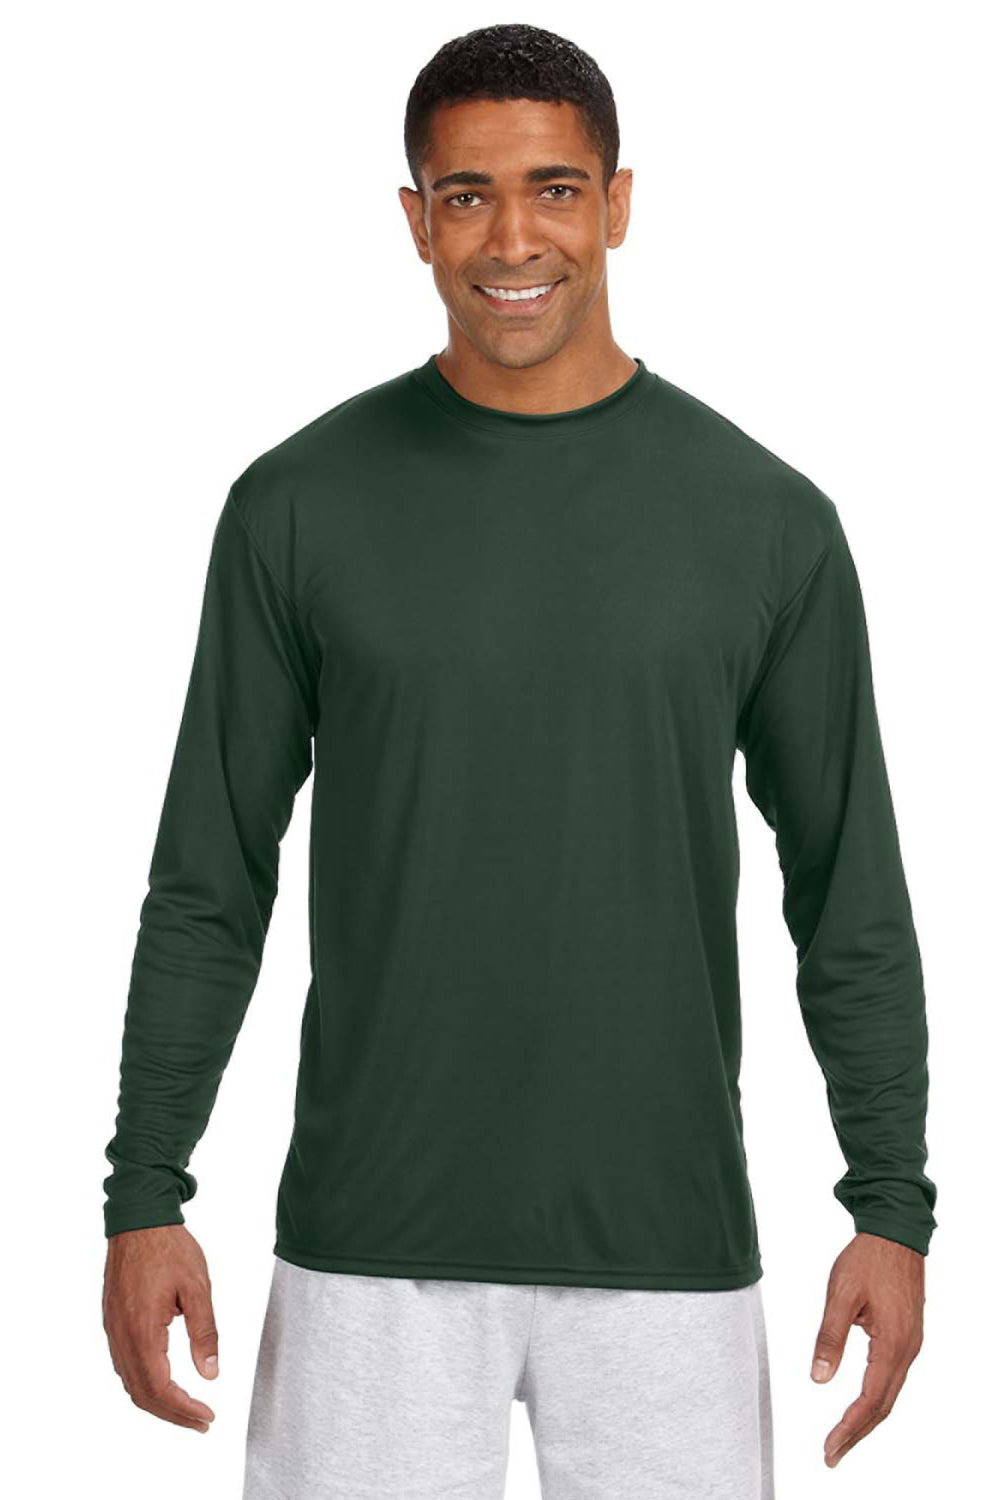 A4 N3165 Mens Cooling Performance Moisture Wicking Long Sleeve Crewneck T-Shirt Forest Green Front